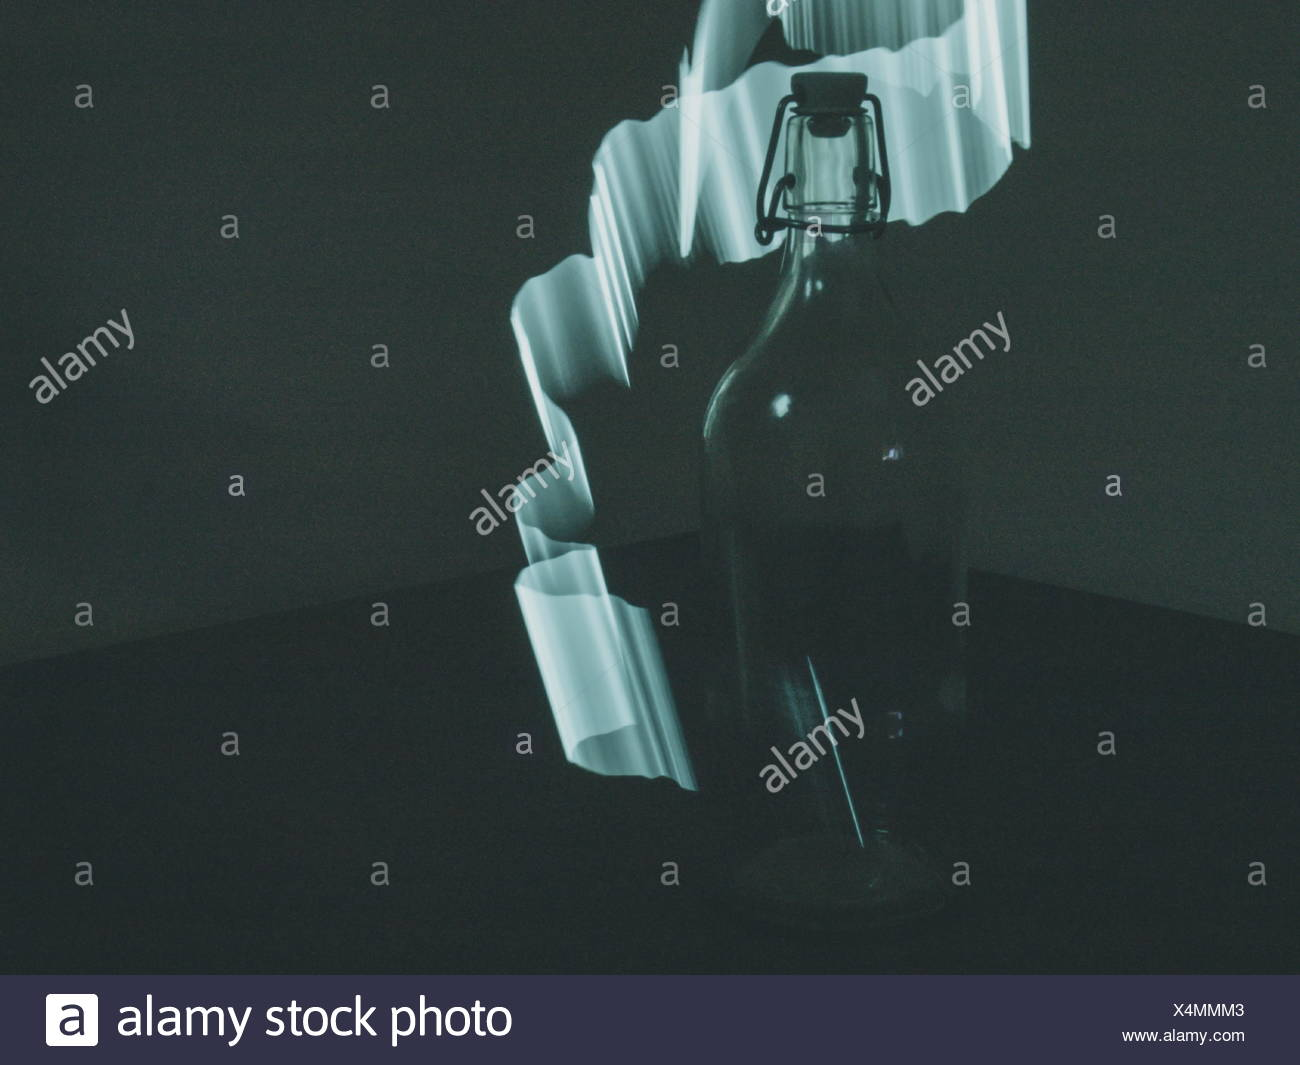 Empty Bottle And Light Trail - Stock Image